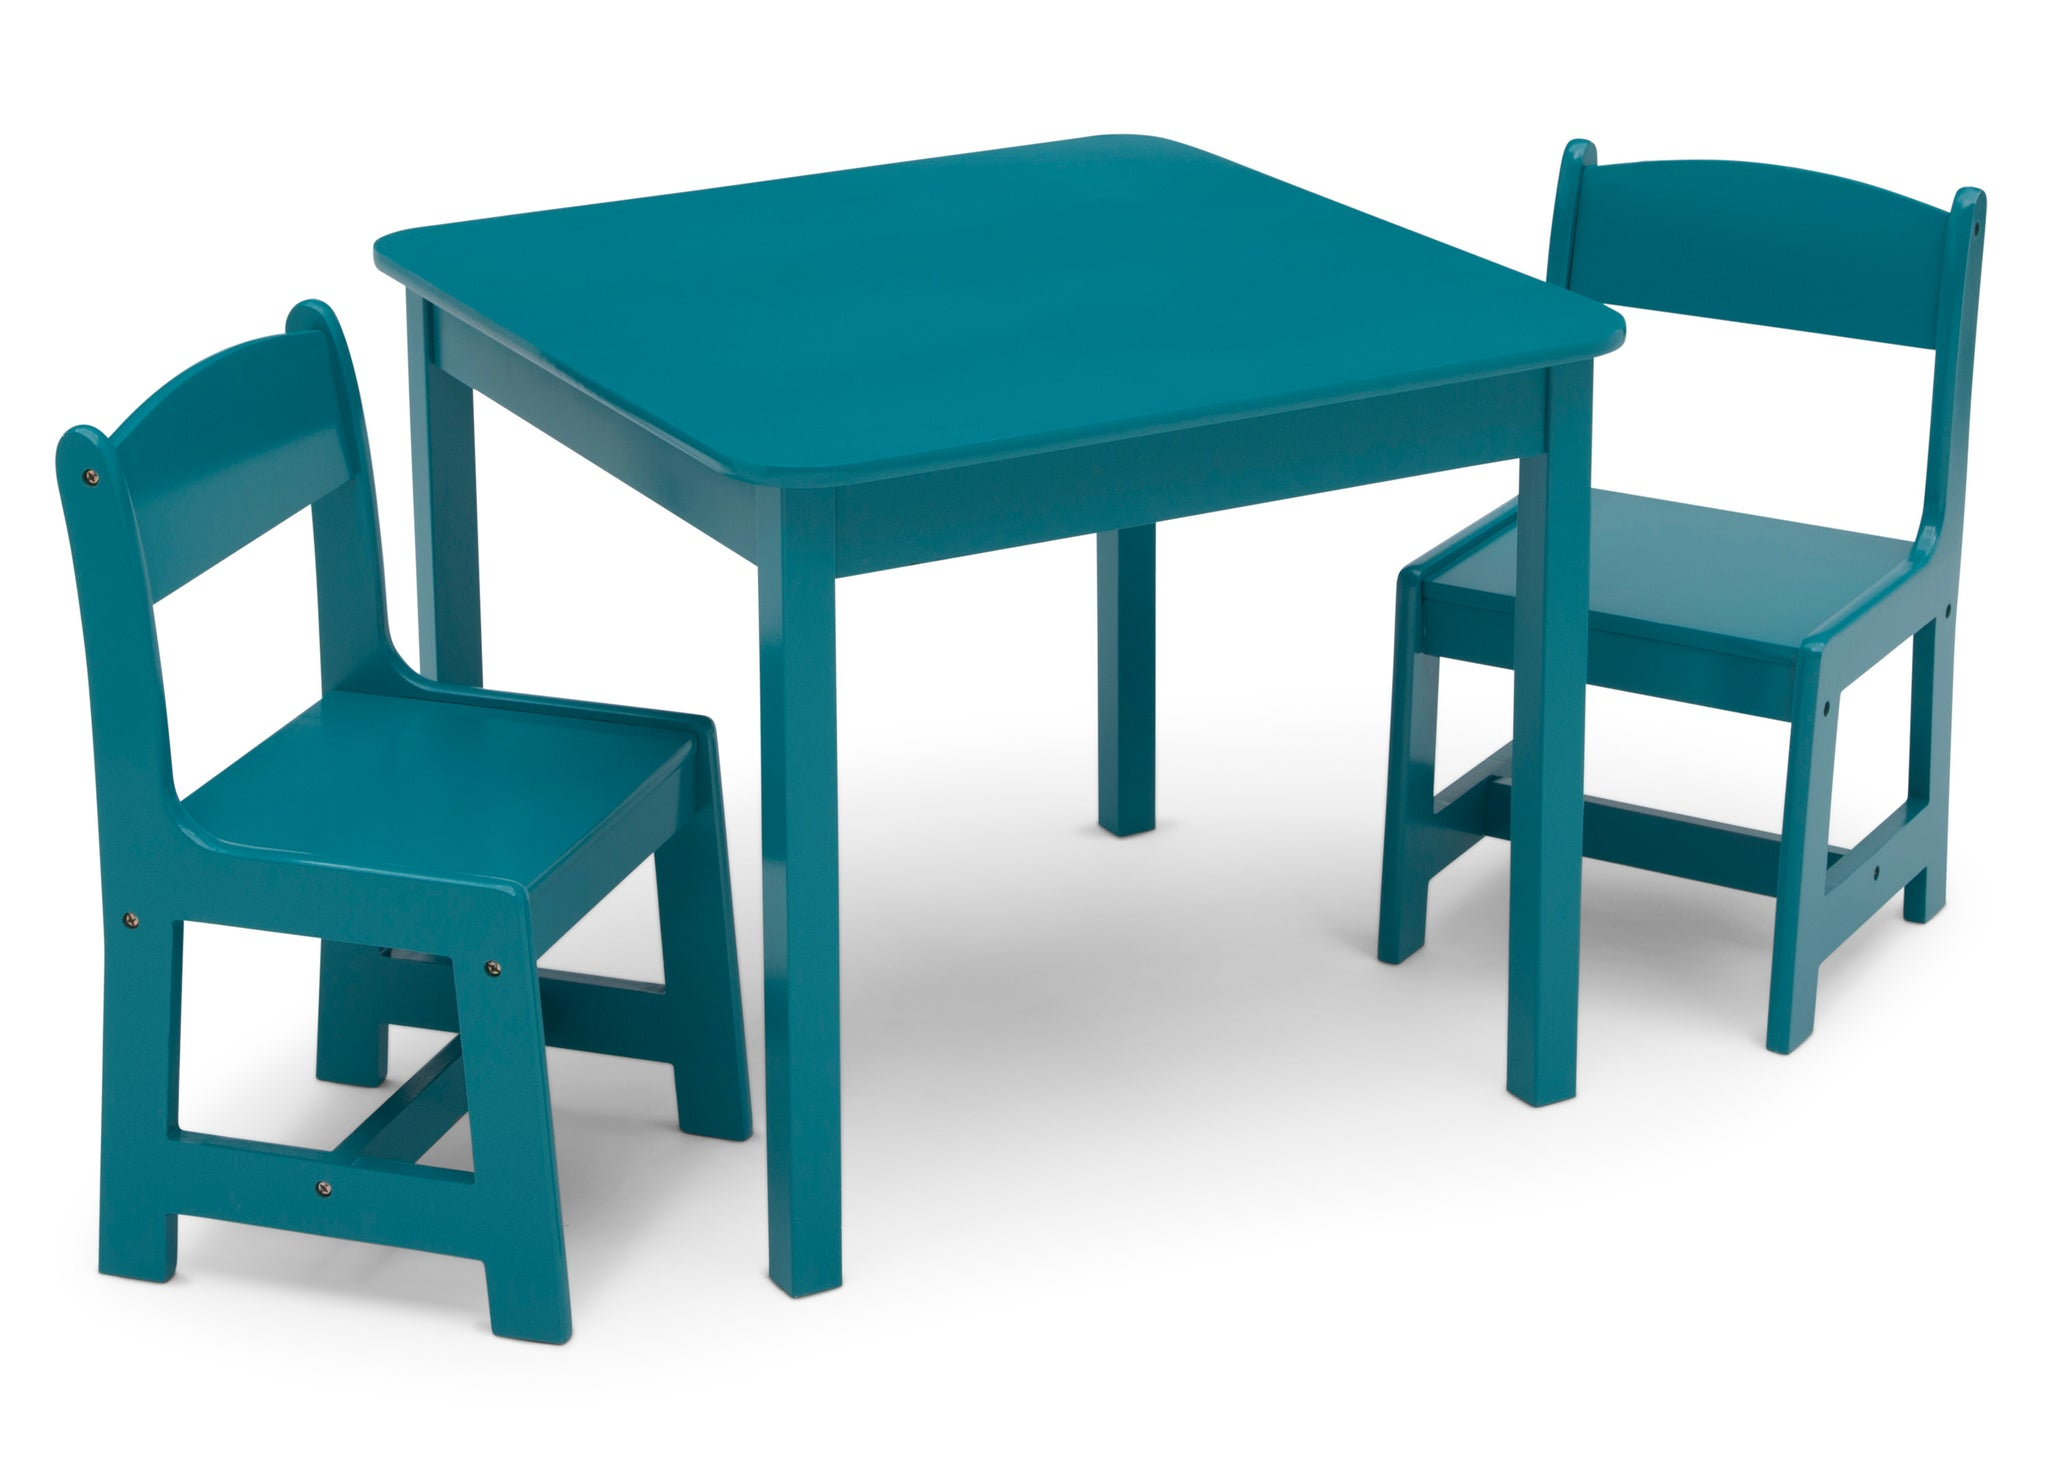 Delta Children Teal (7474C) MySize Table & Chairs Set, Right Silo View